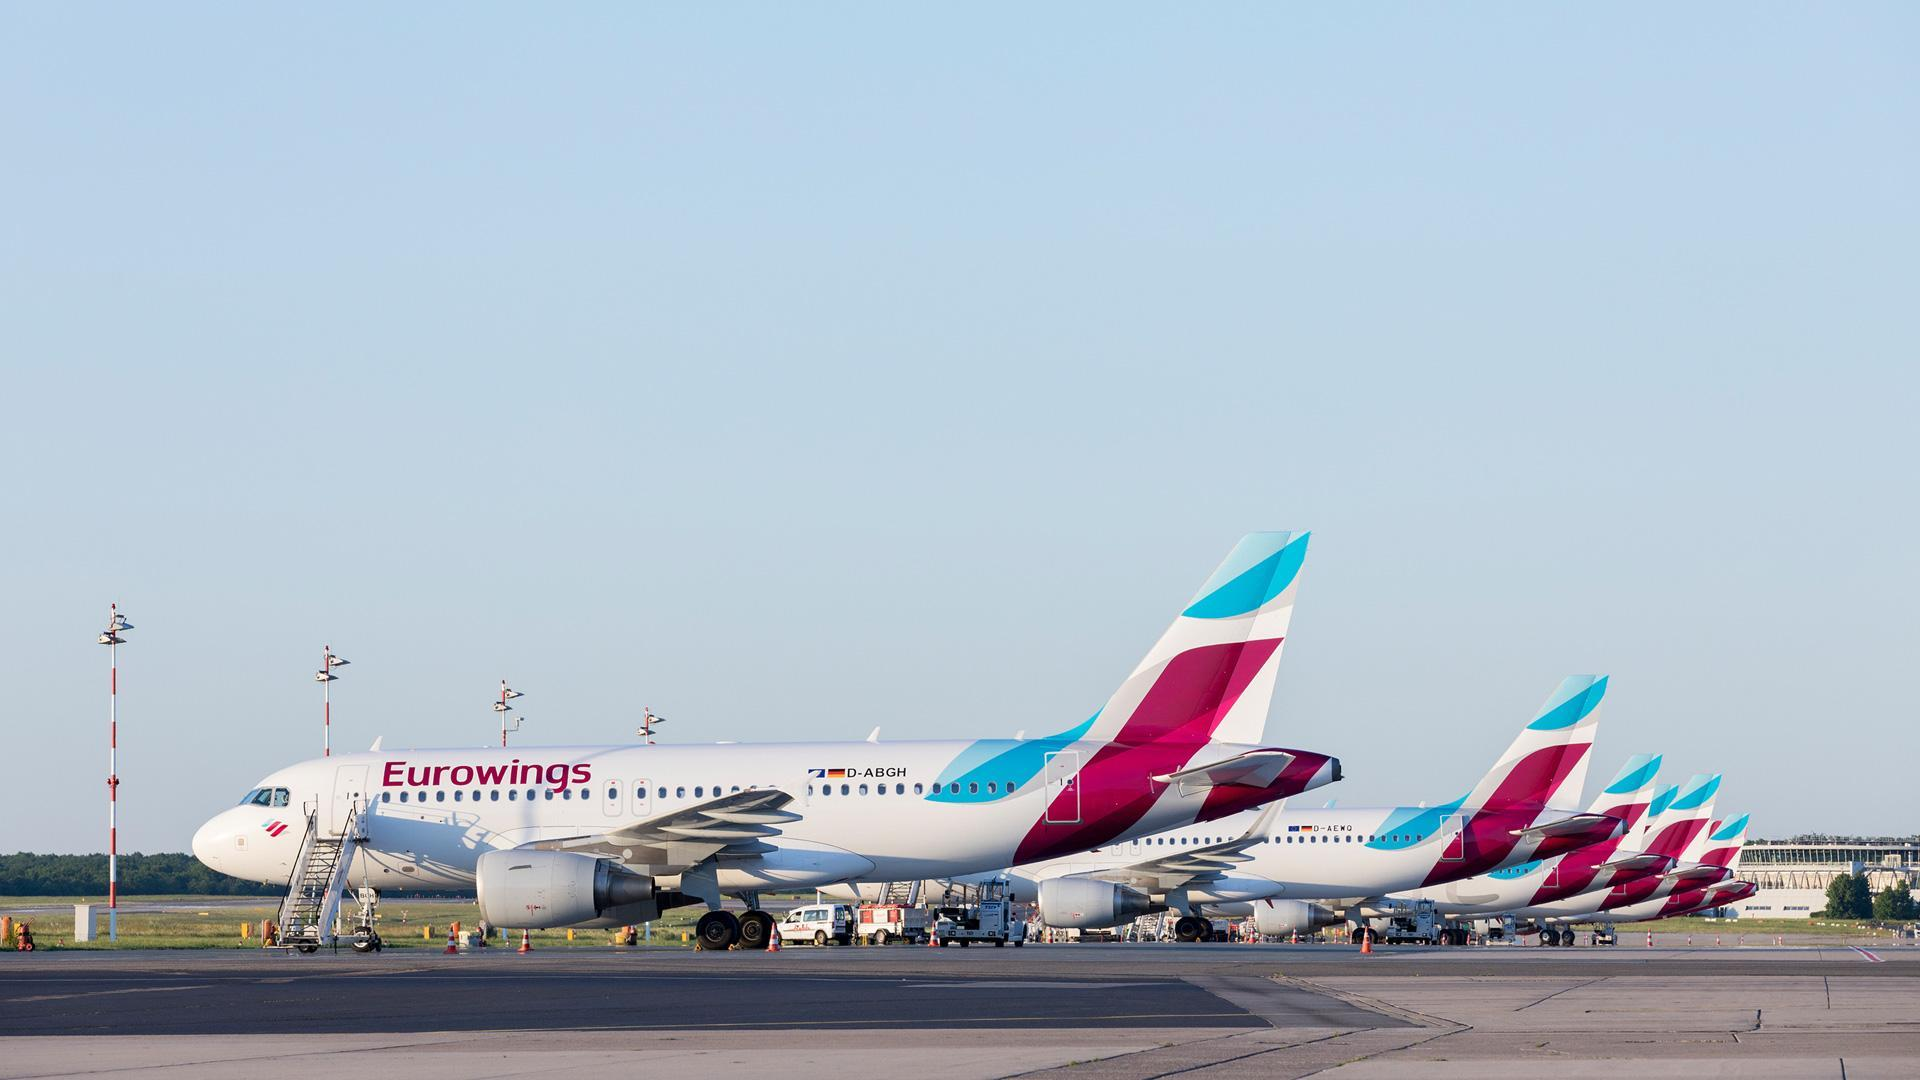 DLR Low Cost Monitor: Eurowings aircraft on the apron